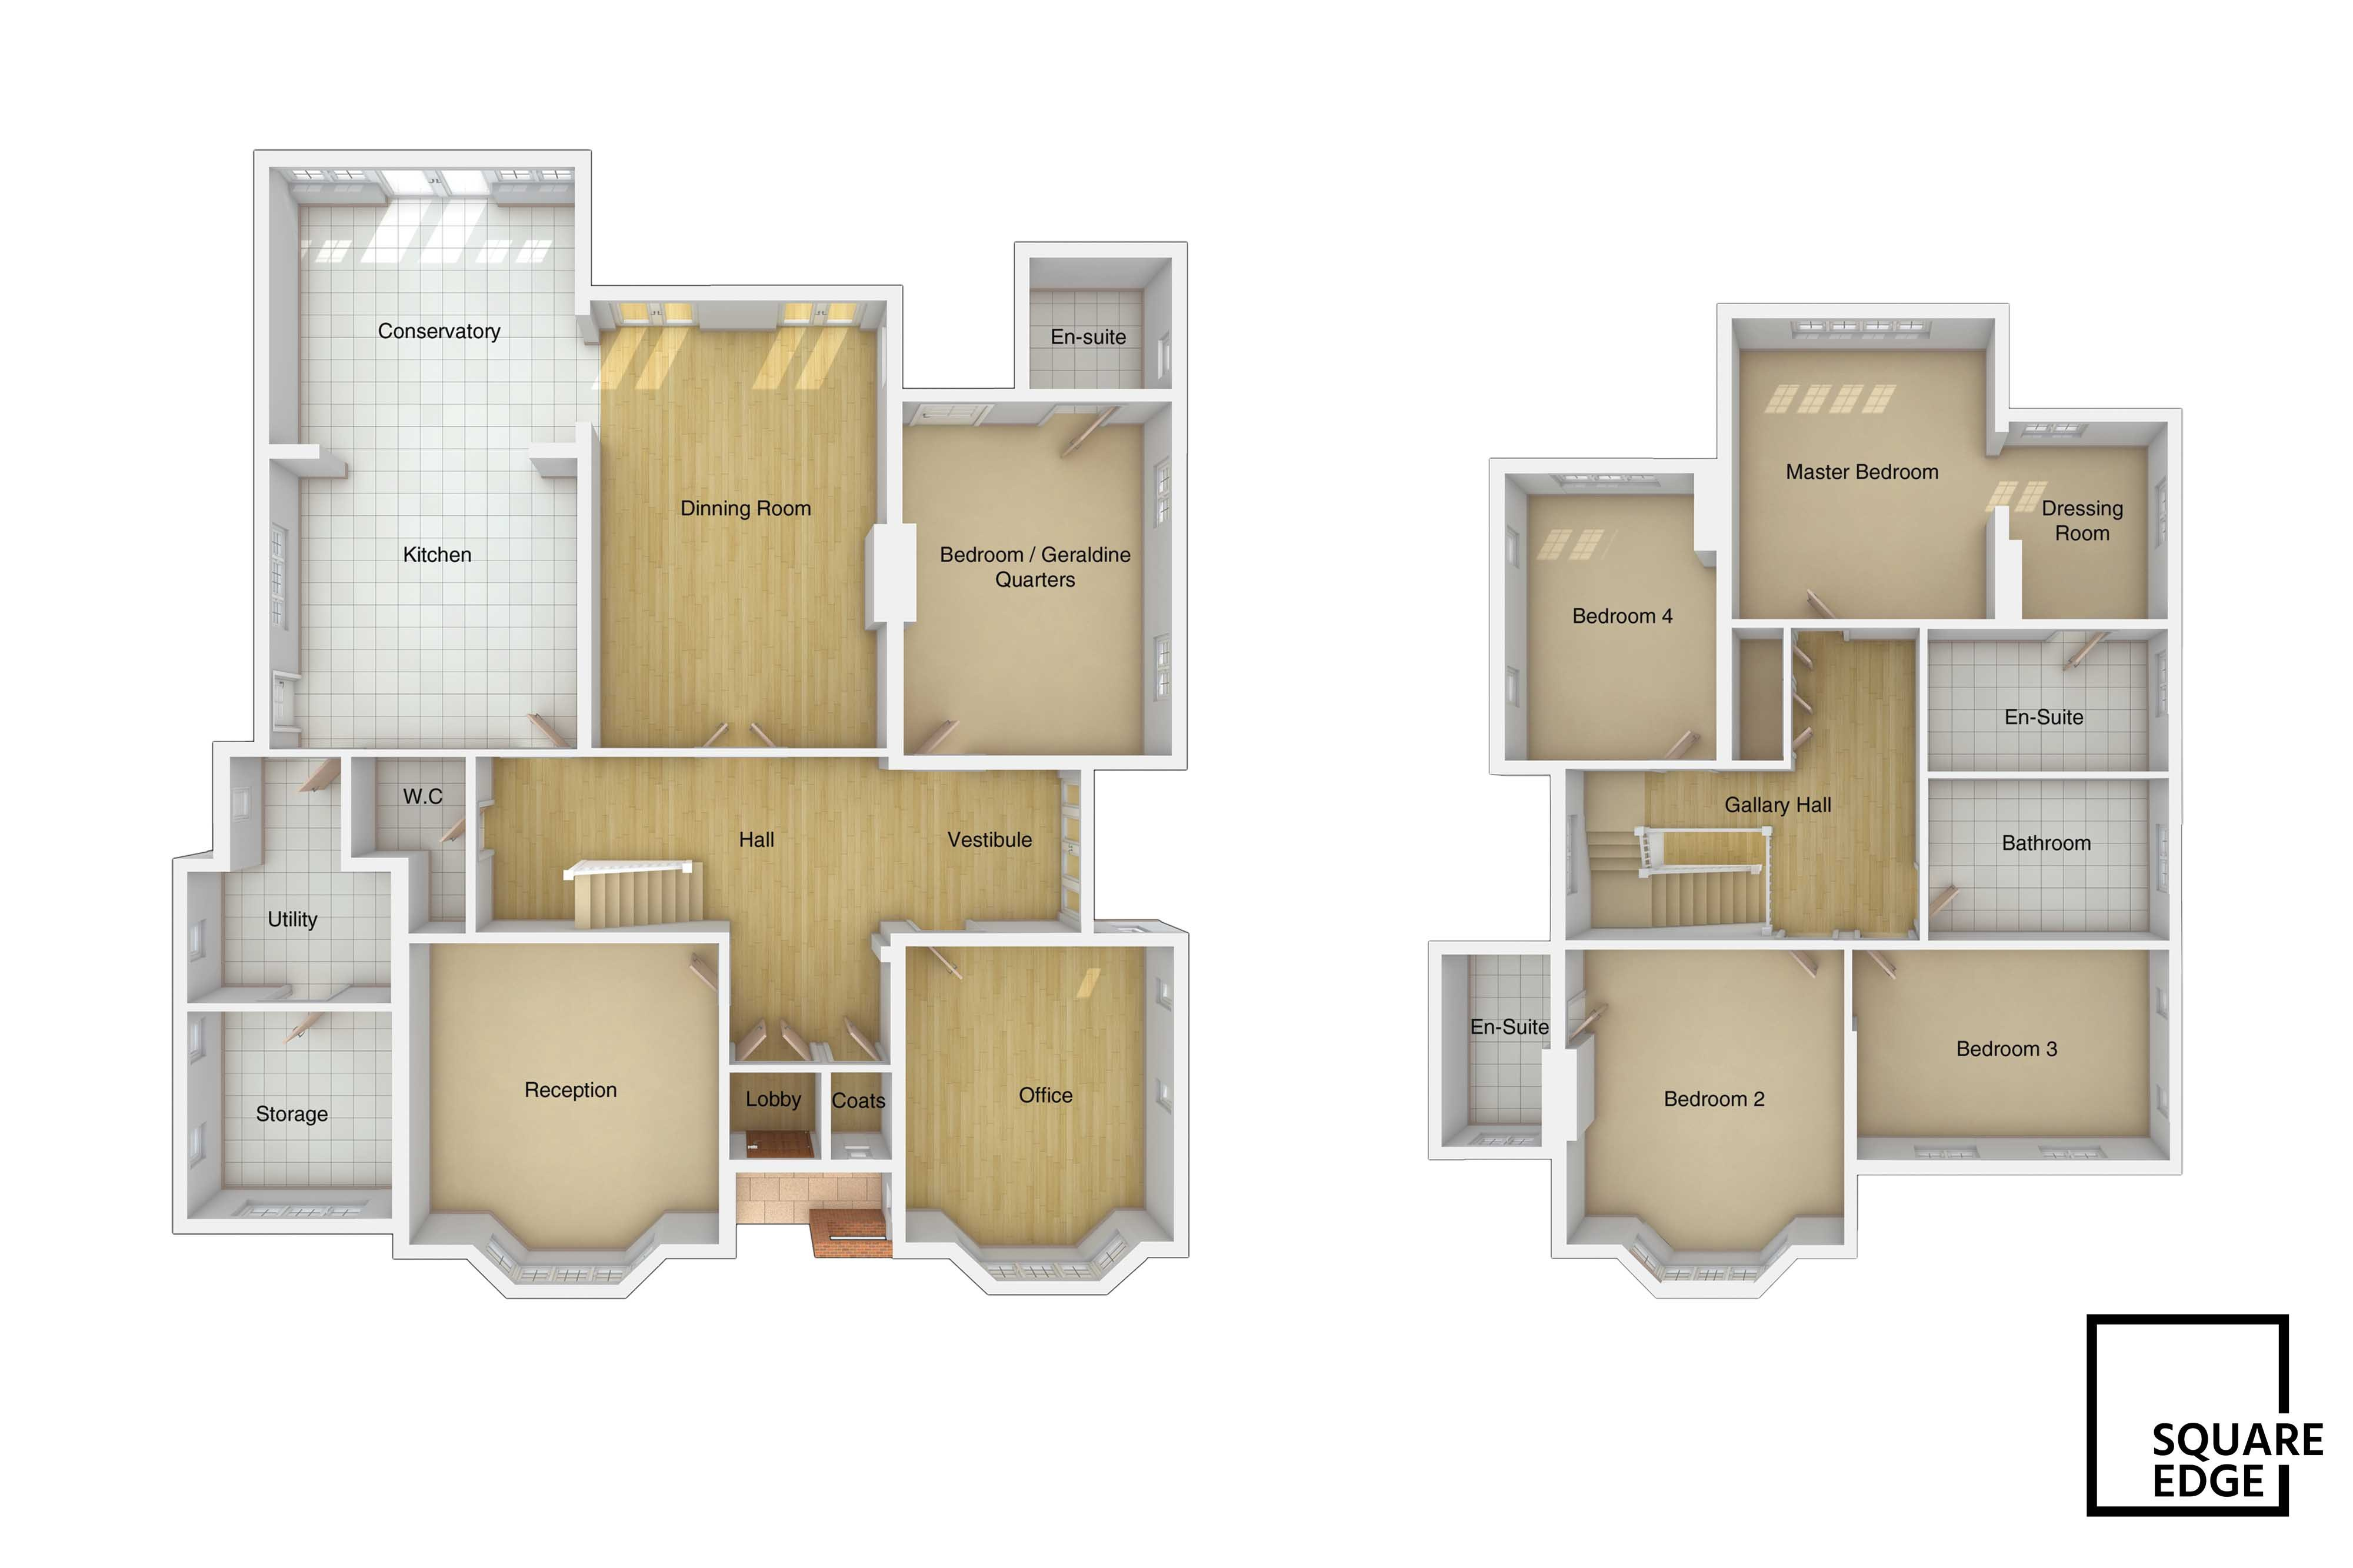 3d floor plans square edge 3d architectural for Floorplans 3d